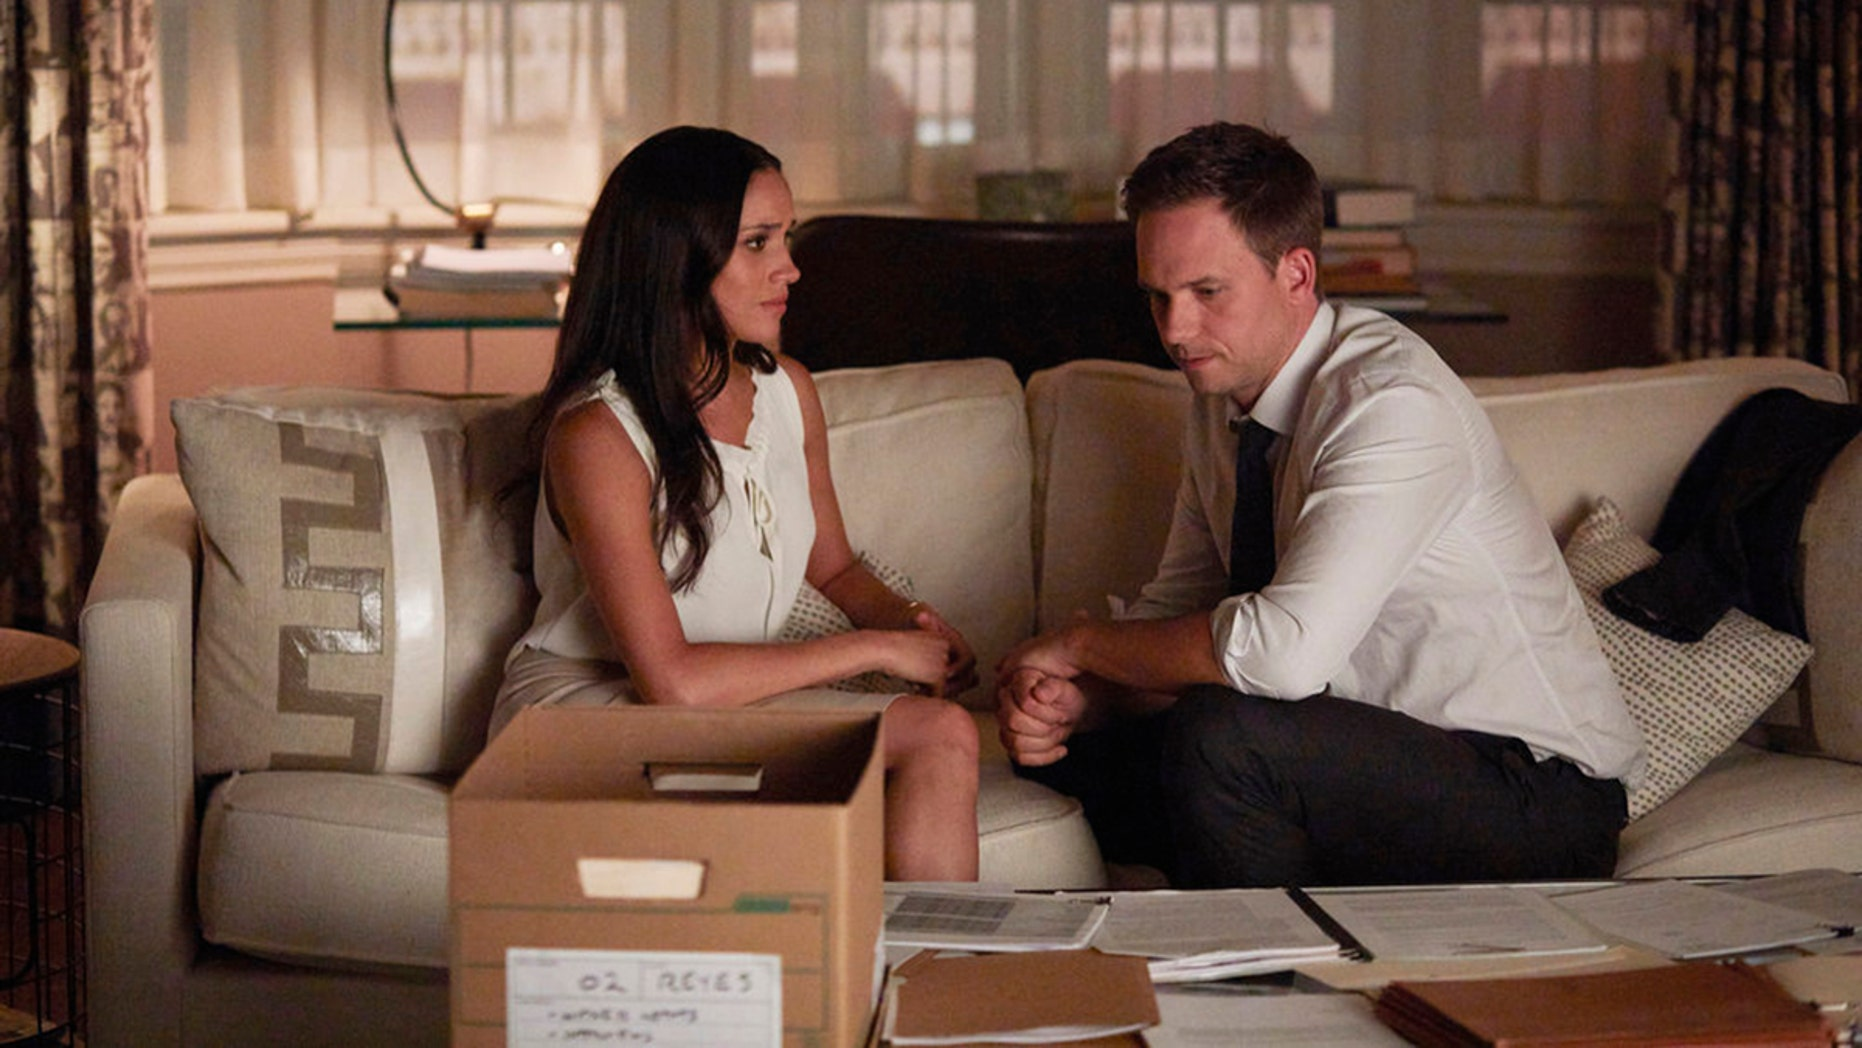 'Suits' will return for a final season following the departure of Patrick J. Adams and Meghan Markle.